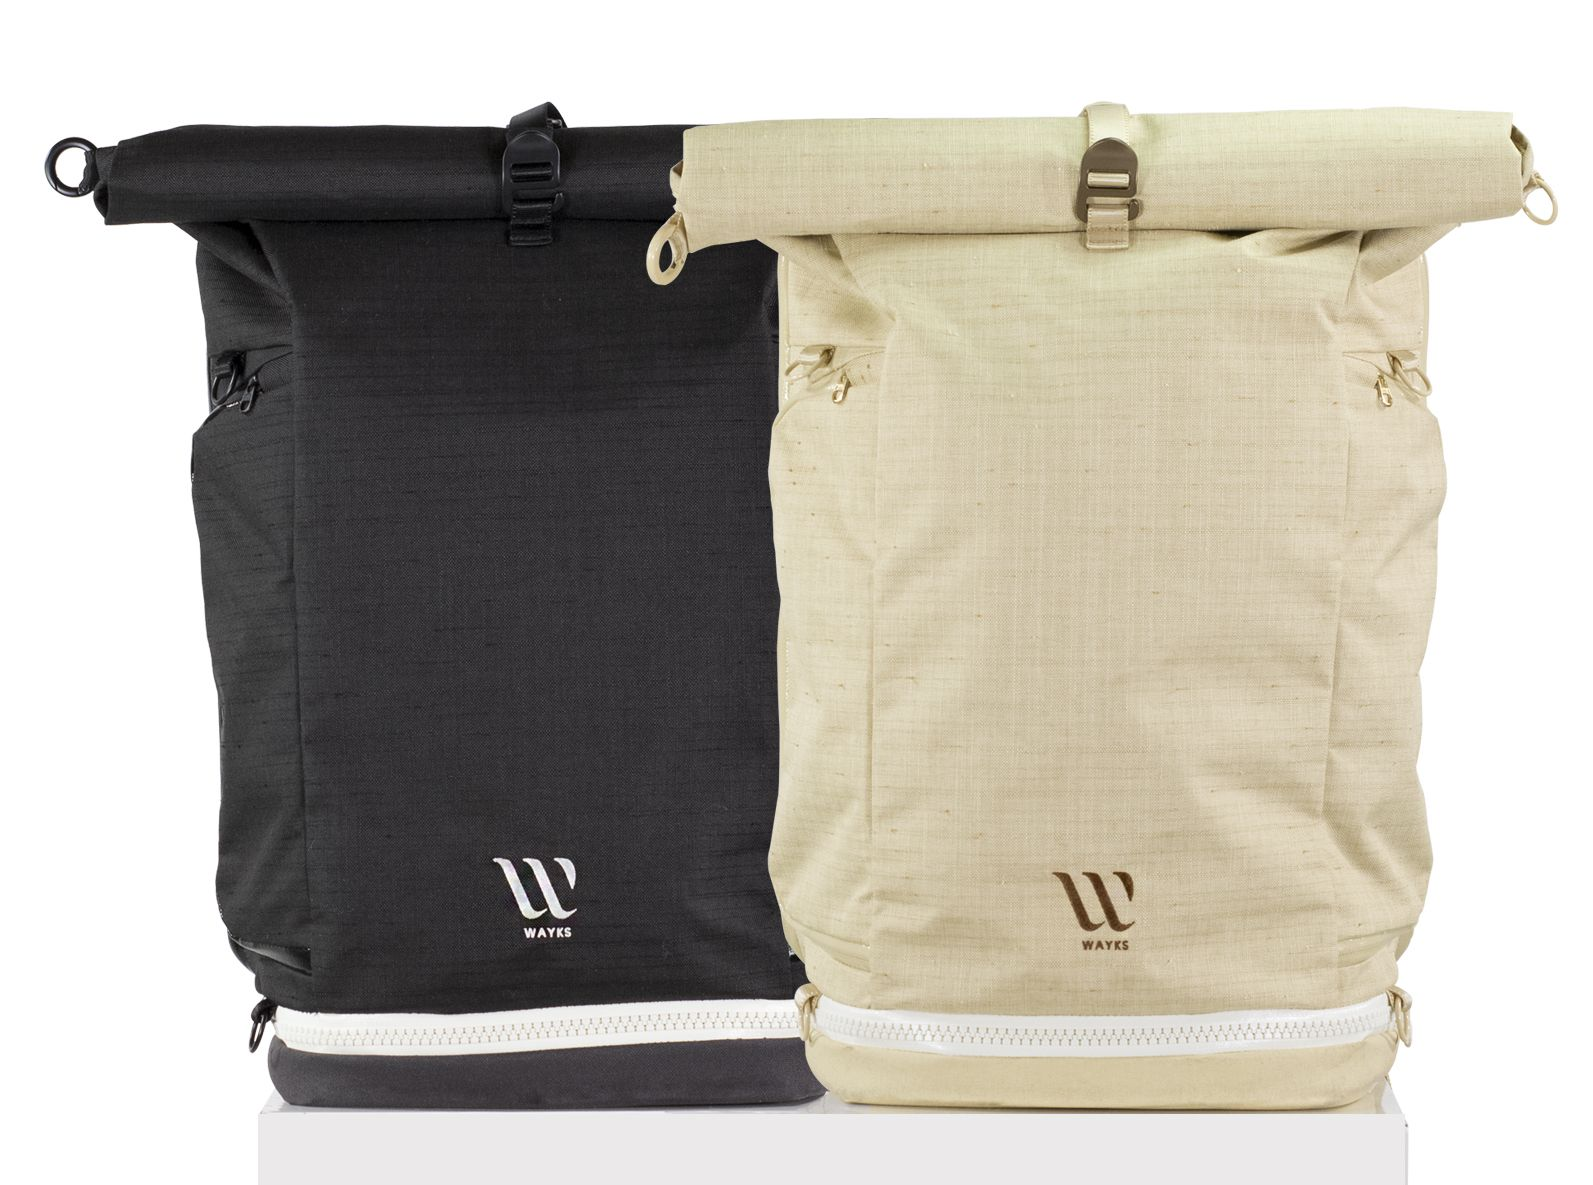 603935a1f93d WAYKS ONE is a modular travel backpack that can be converted into a smaller  day pack